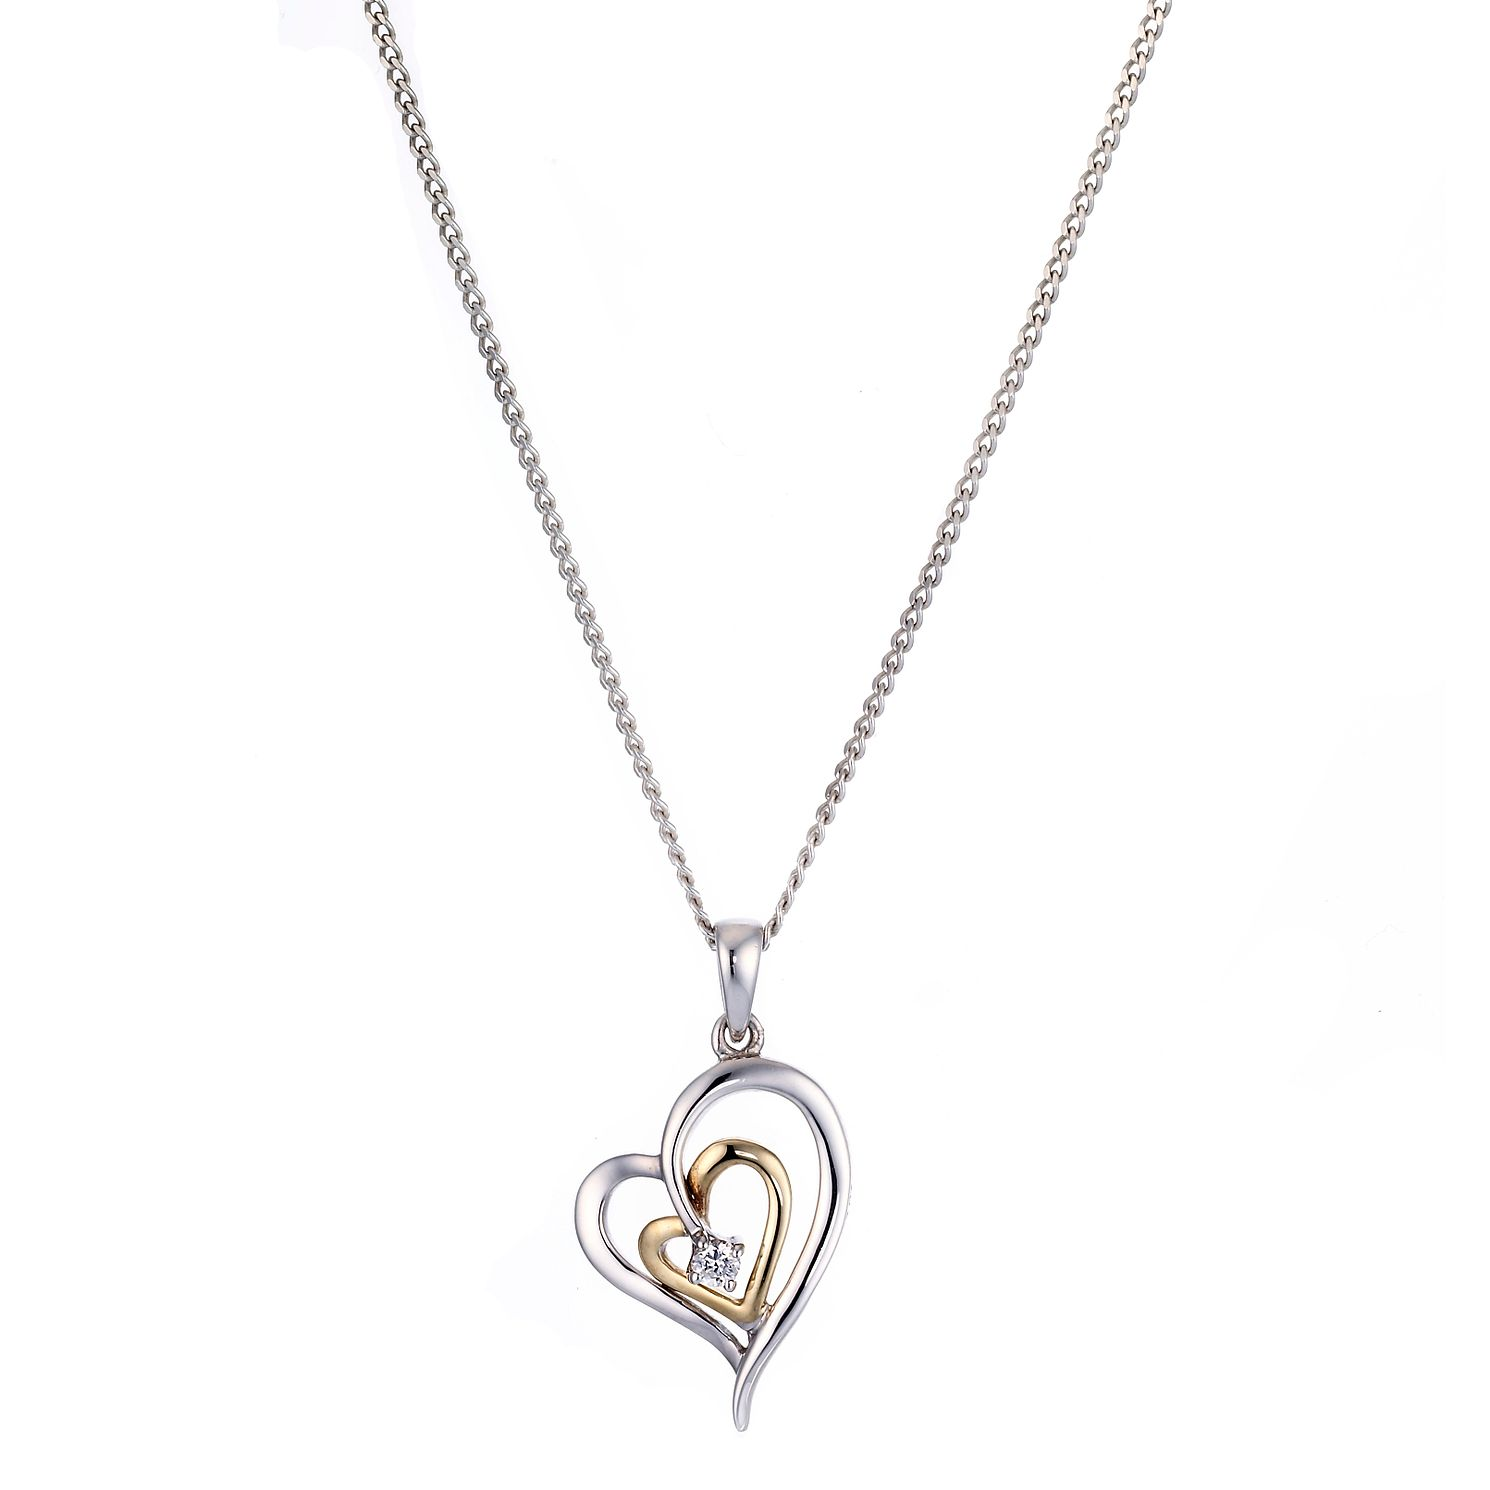 jewellery necklace gold heart misuzi silver collection products